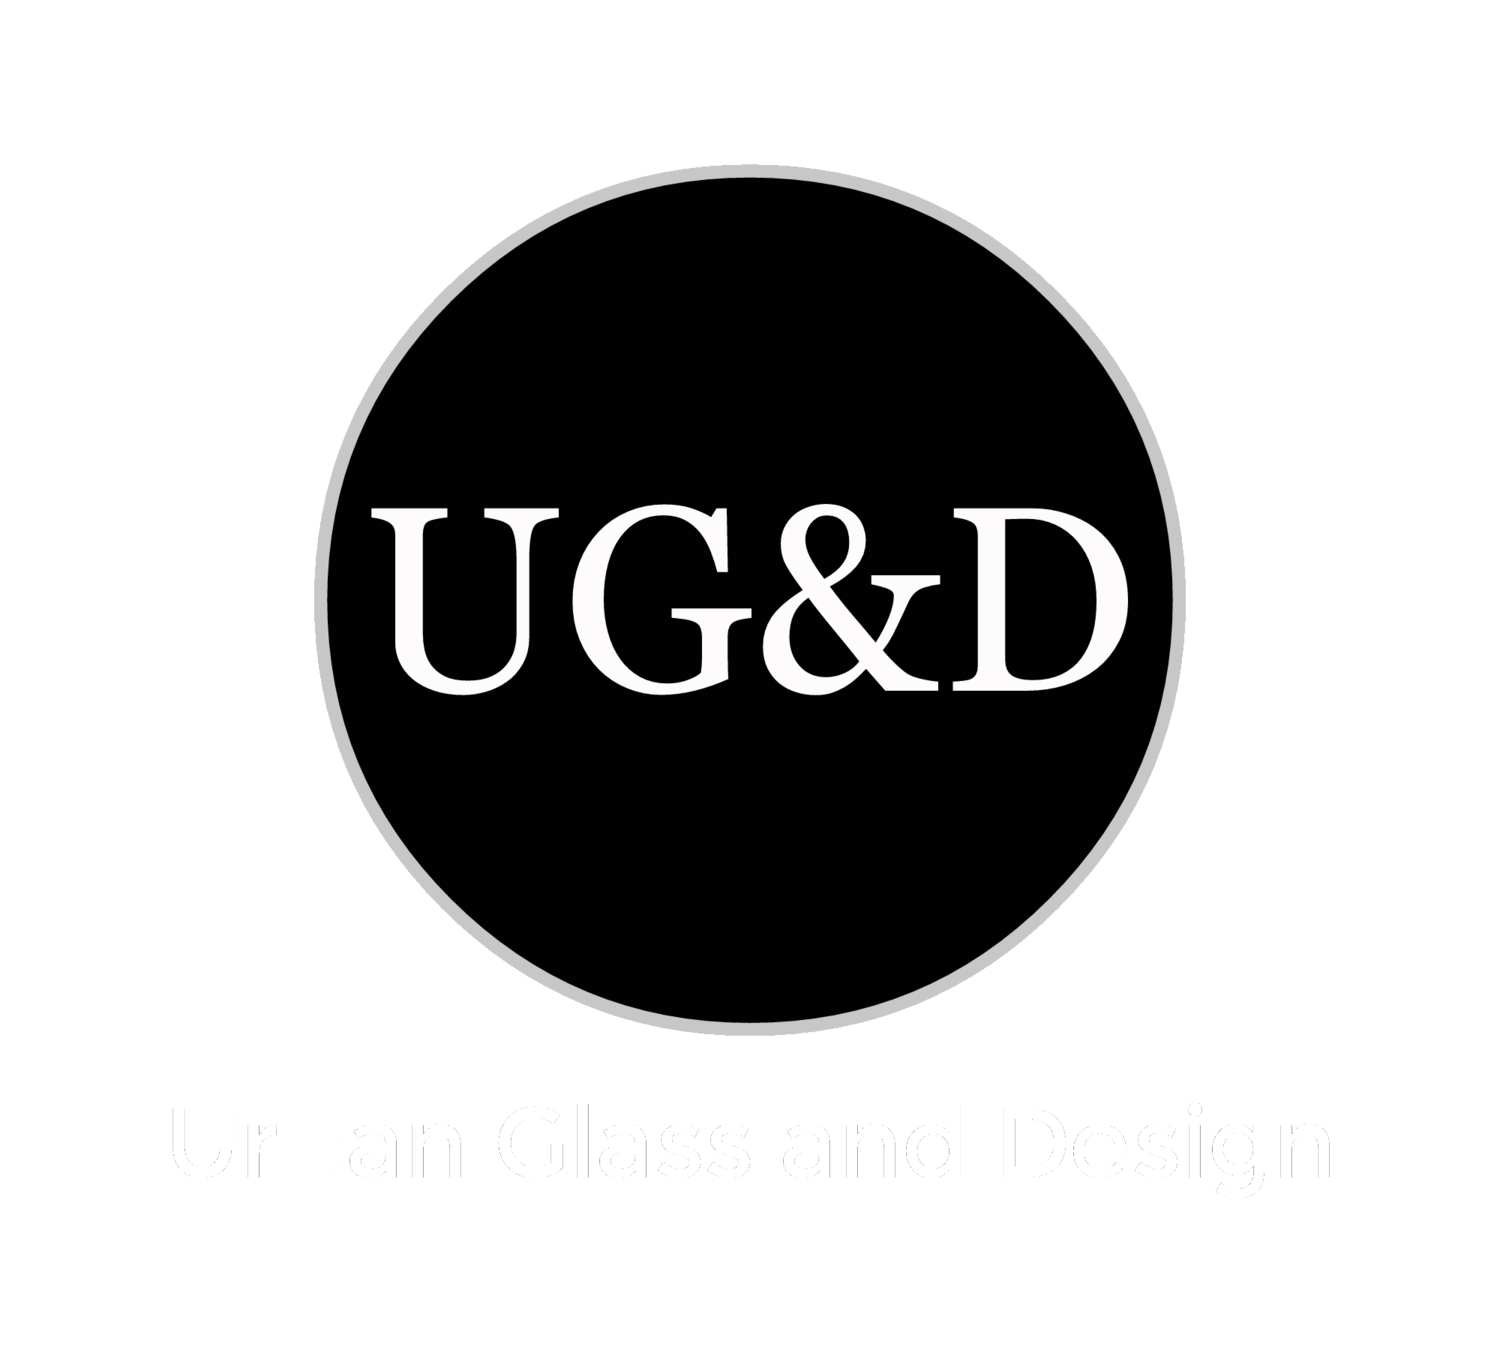 Urban Glass & Design